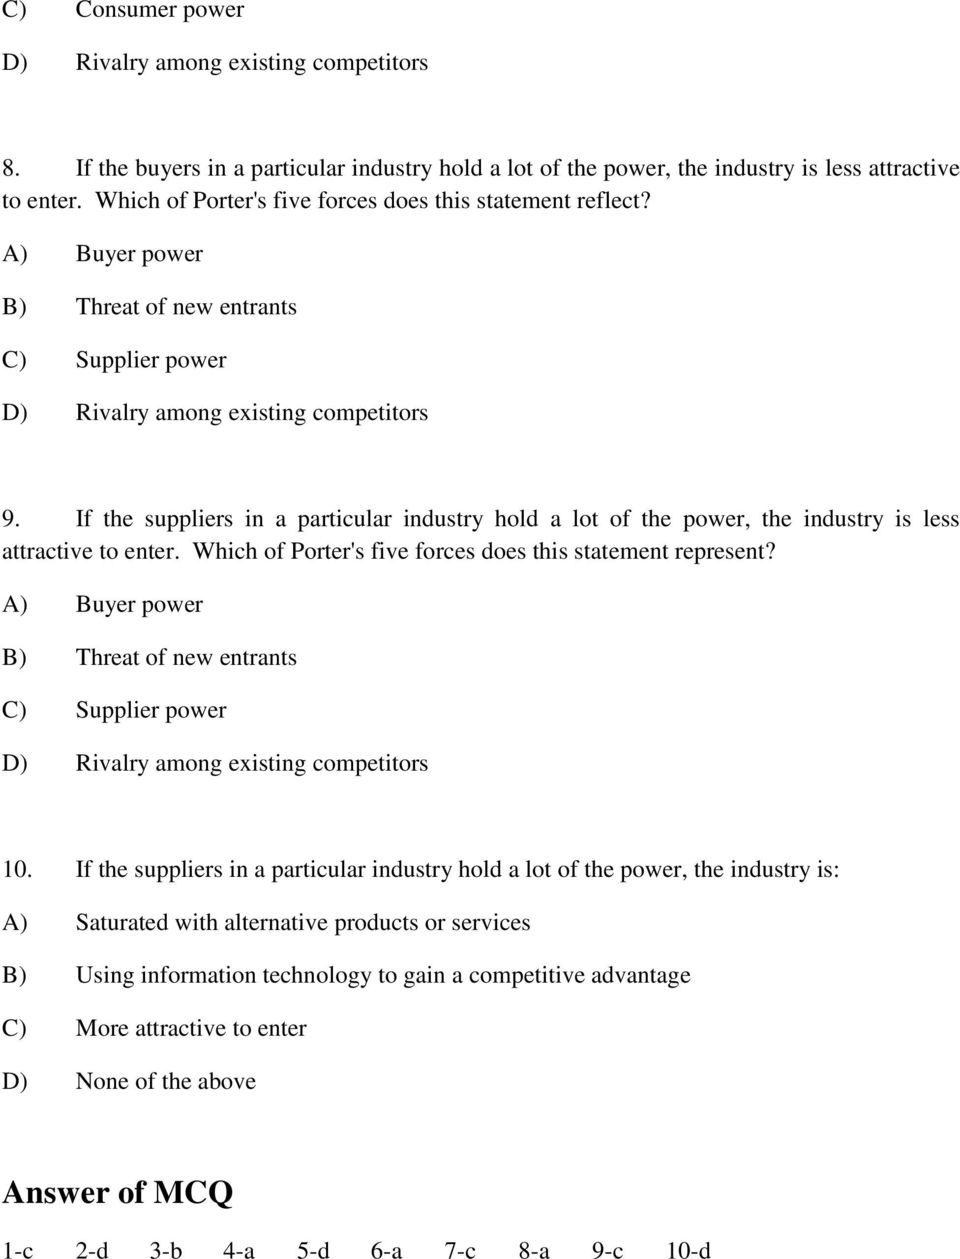 If the suppliers in a particular industry hold a lot of the power, the industry is less attractive to enter. Which of Porter's five forces does this statement represent?